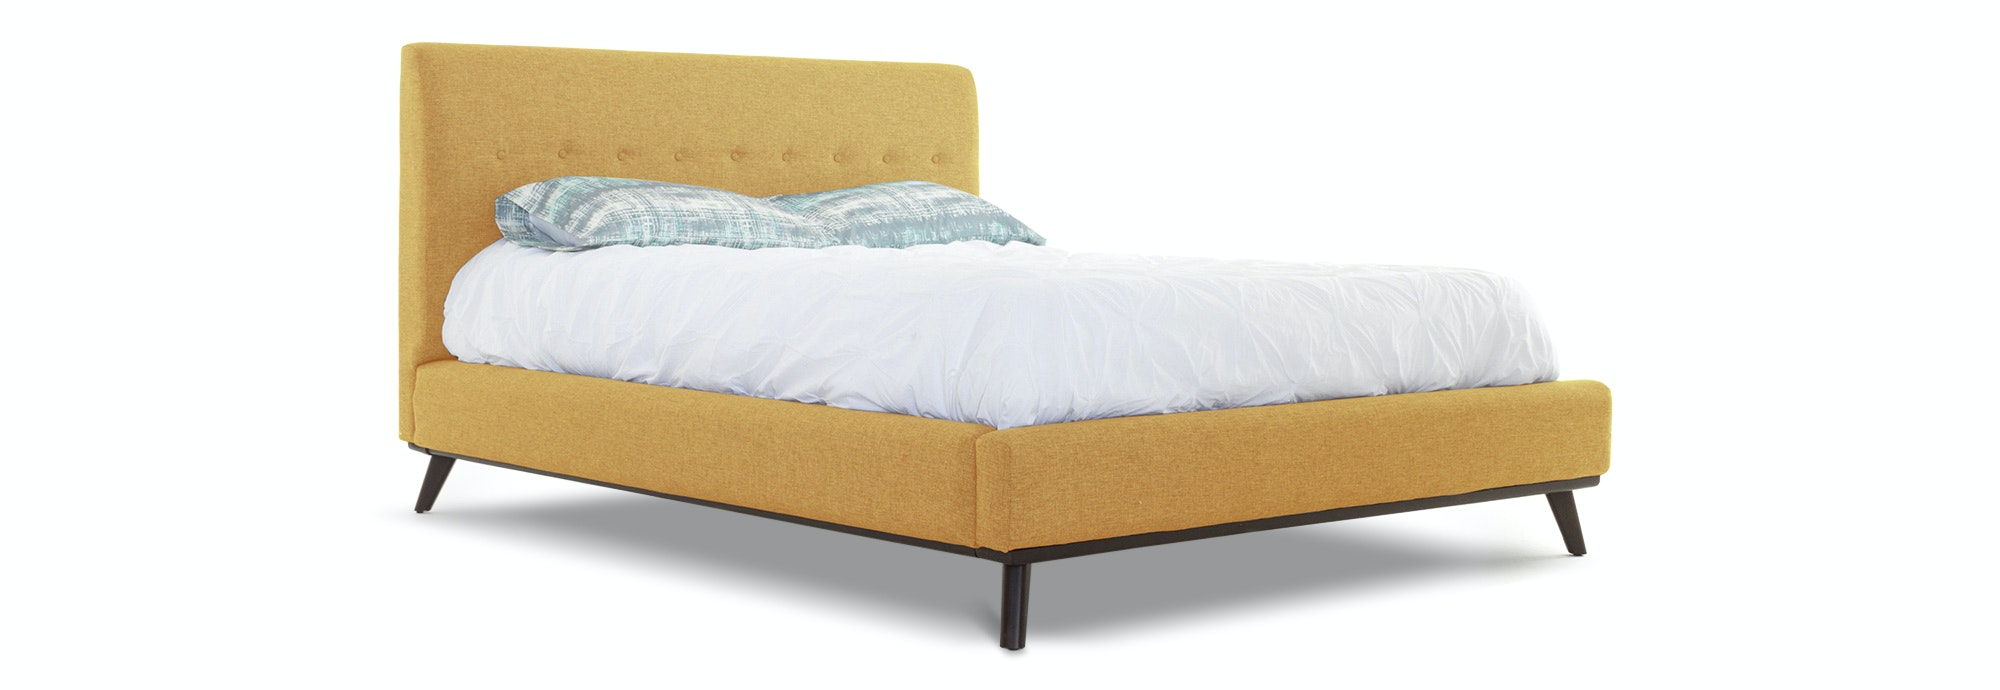 Futon Factory Paris Hopson Bed